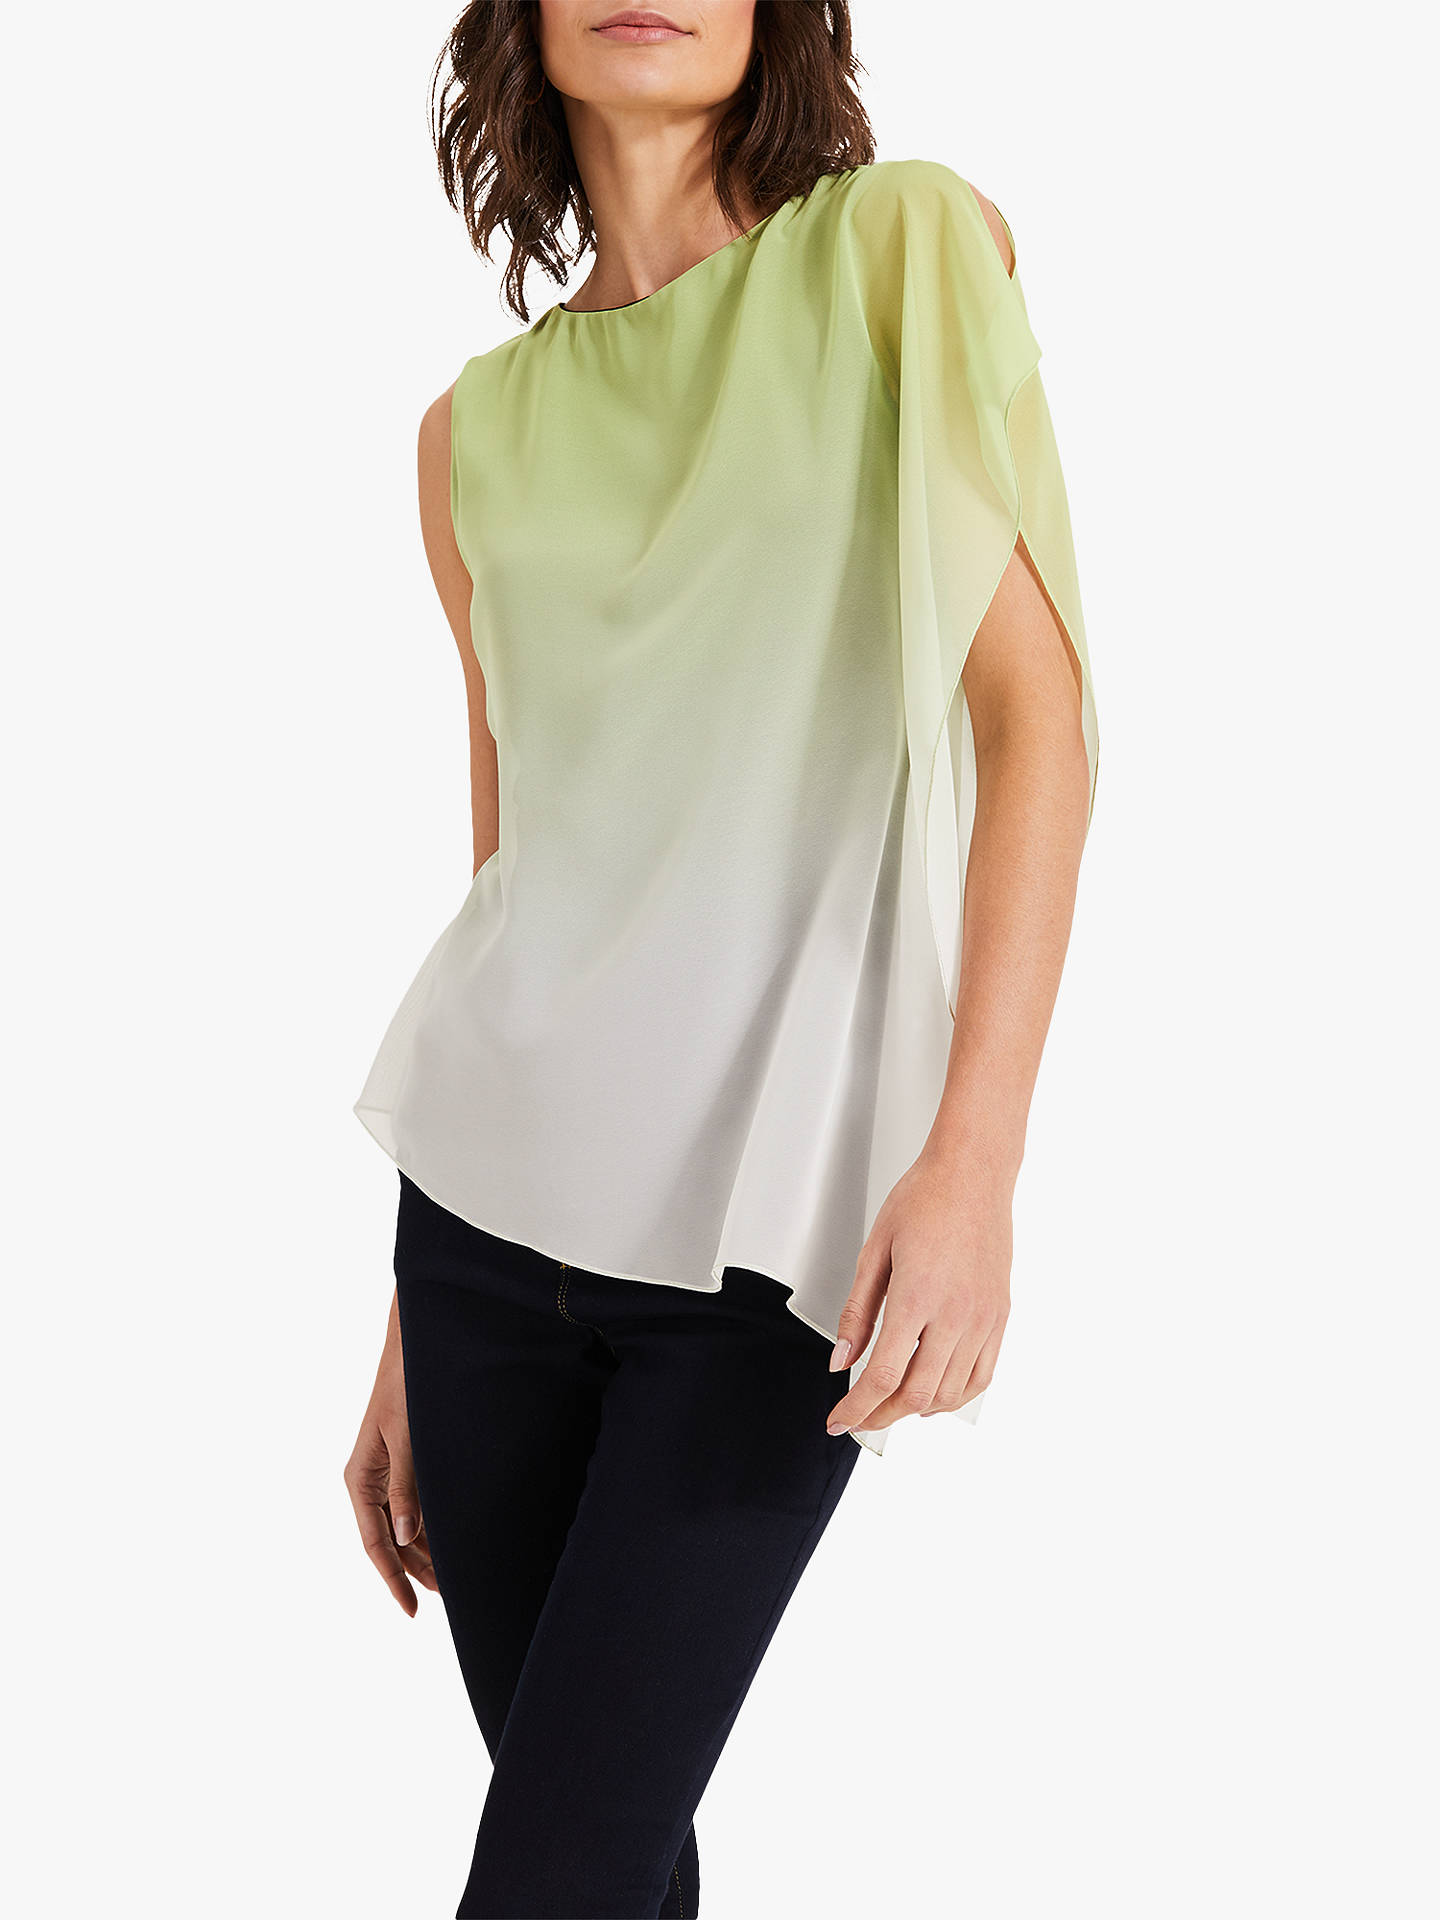 6a272119 Buy Phase Eight Camille Ombre Chiffon Top, Lime, 8 Online at johnlewis.com  ...